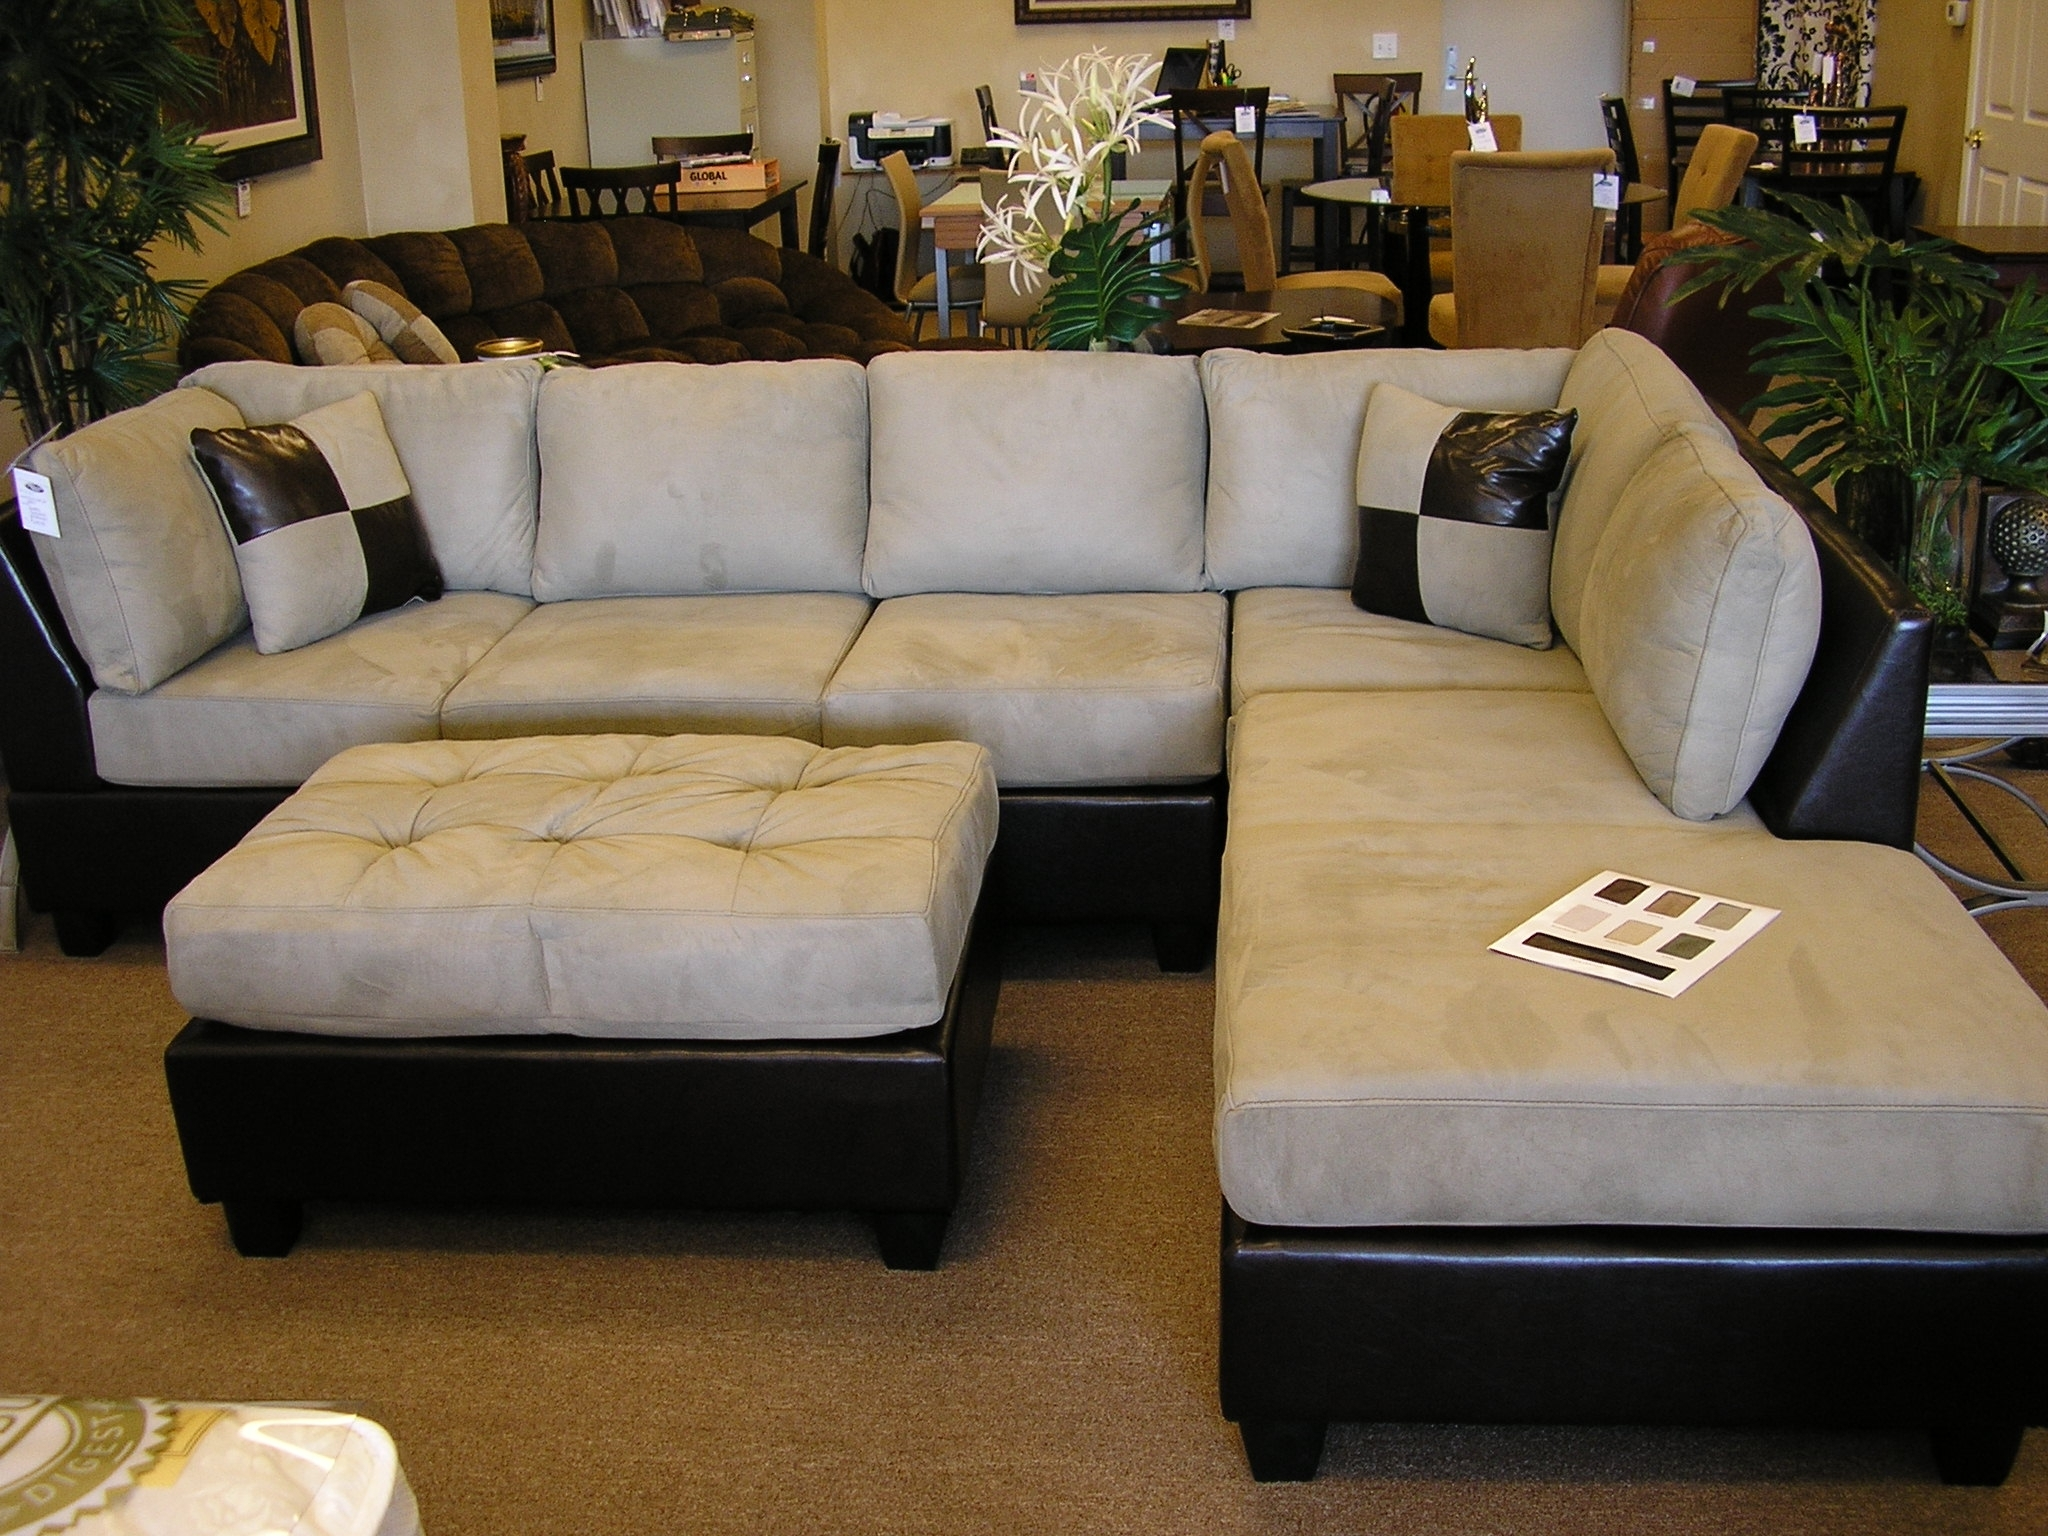 Uncategorized : Sectional Ottoman Set Ideas For Lovely Sofa 3 regarding Leather Sectionals With Chaise and Ottoman